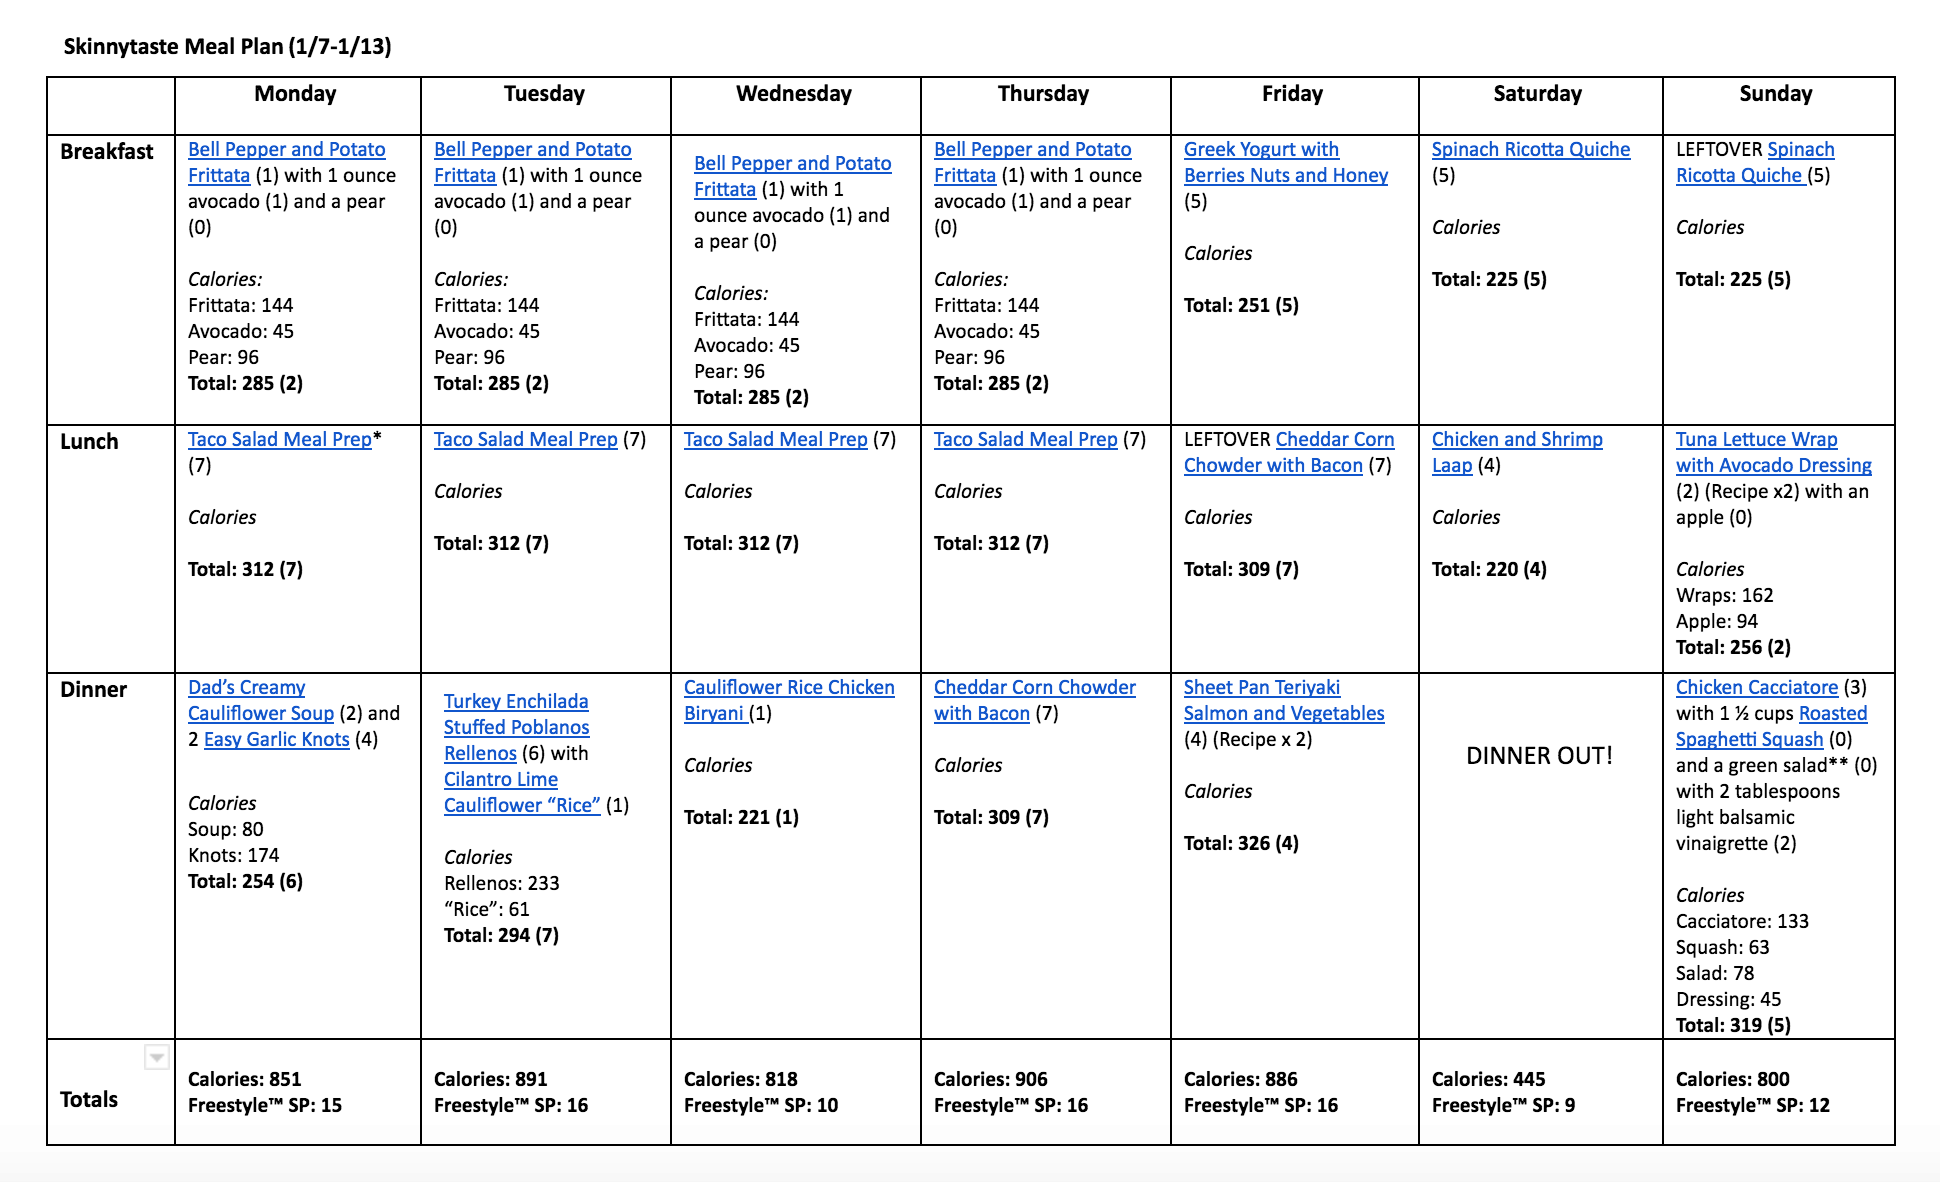 Skinnytaste Meal Plan (January 7-January 13)